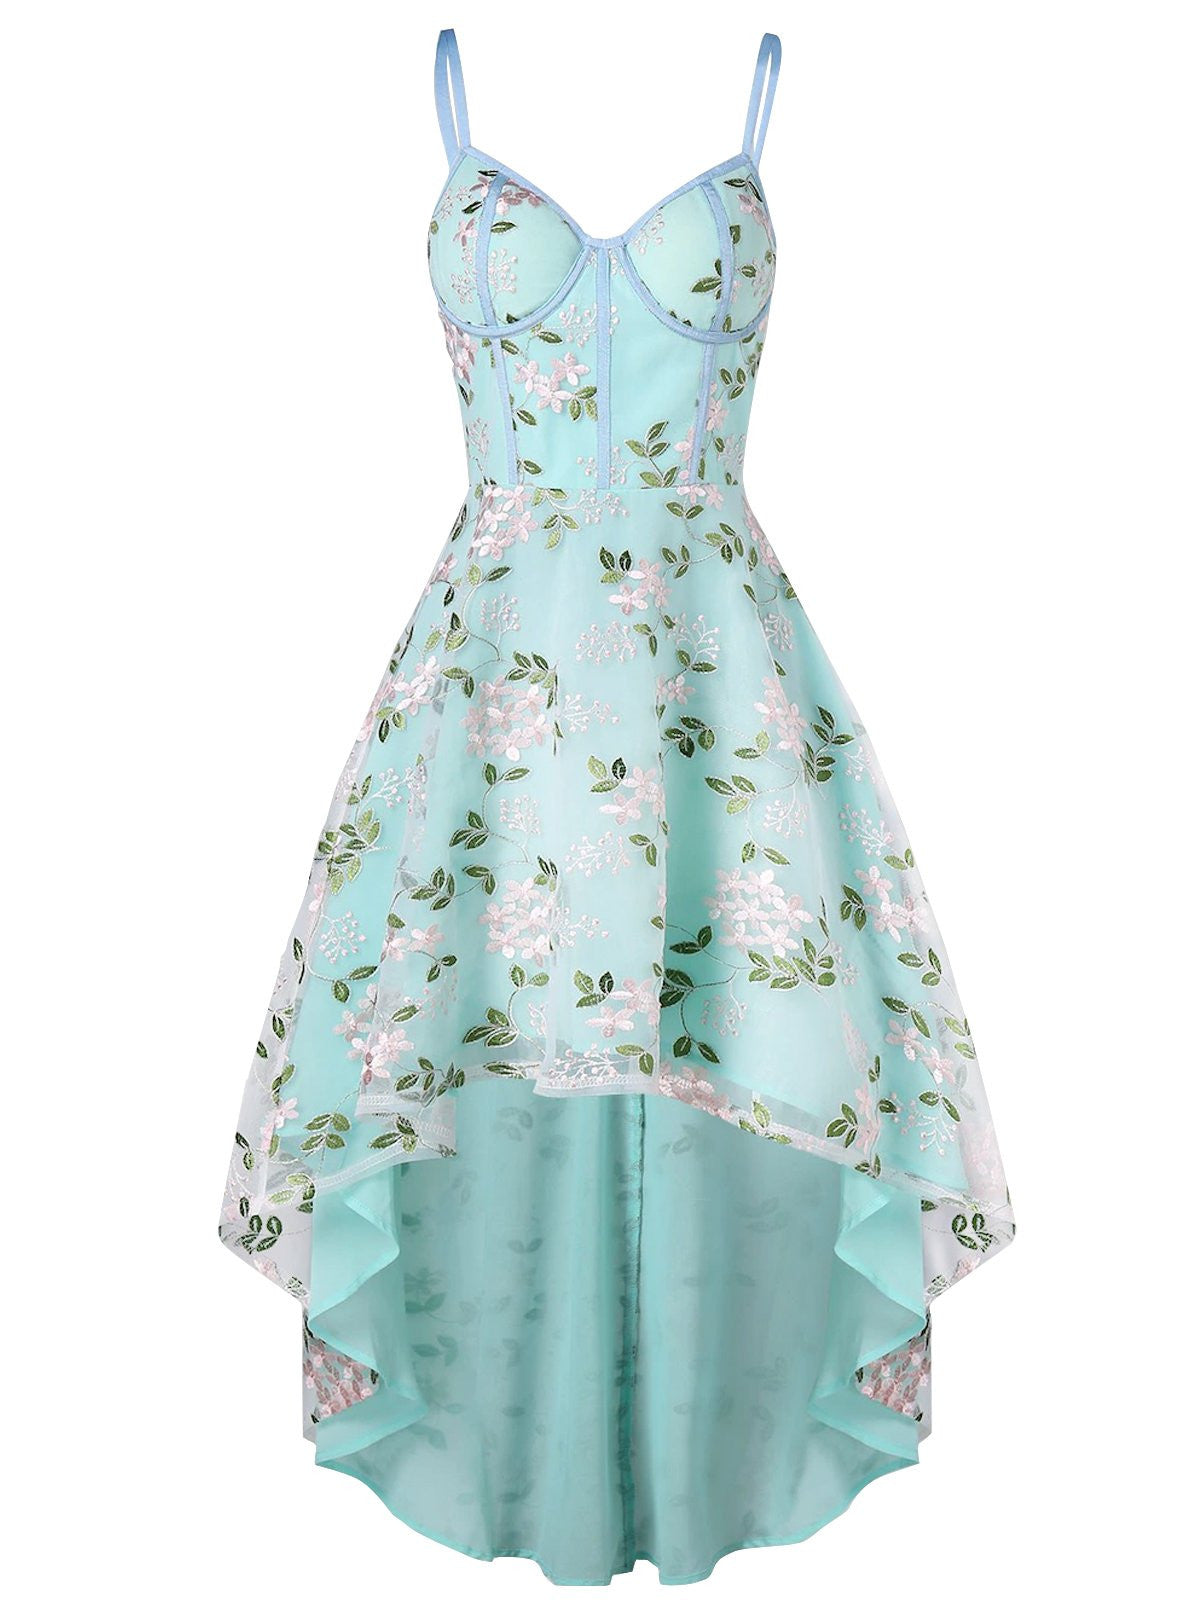 1950S FLORAL EMBROIDERY DRESS – Retro Stage